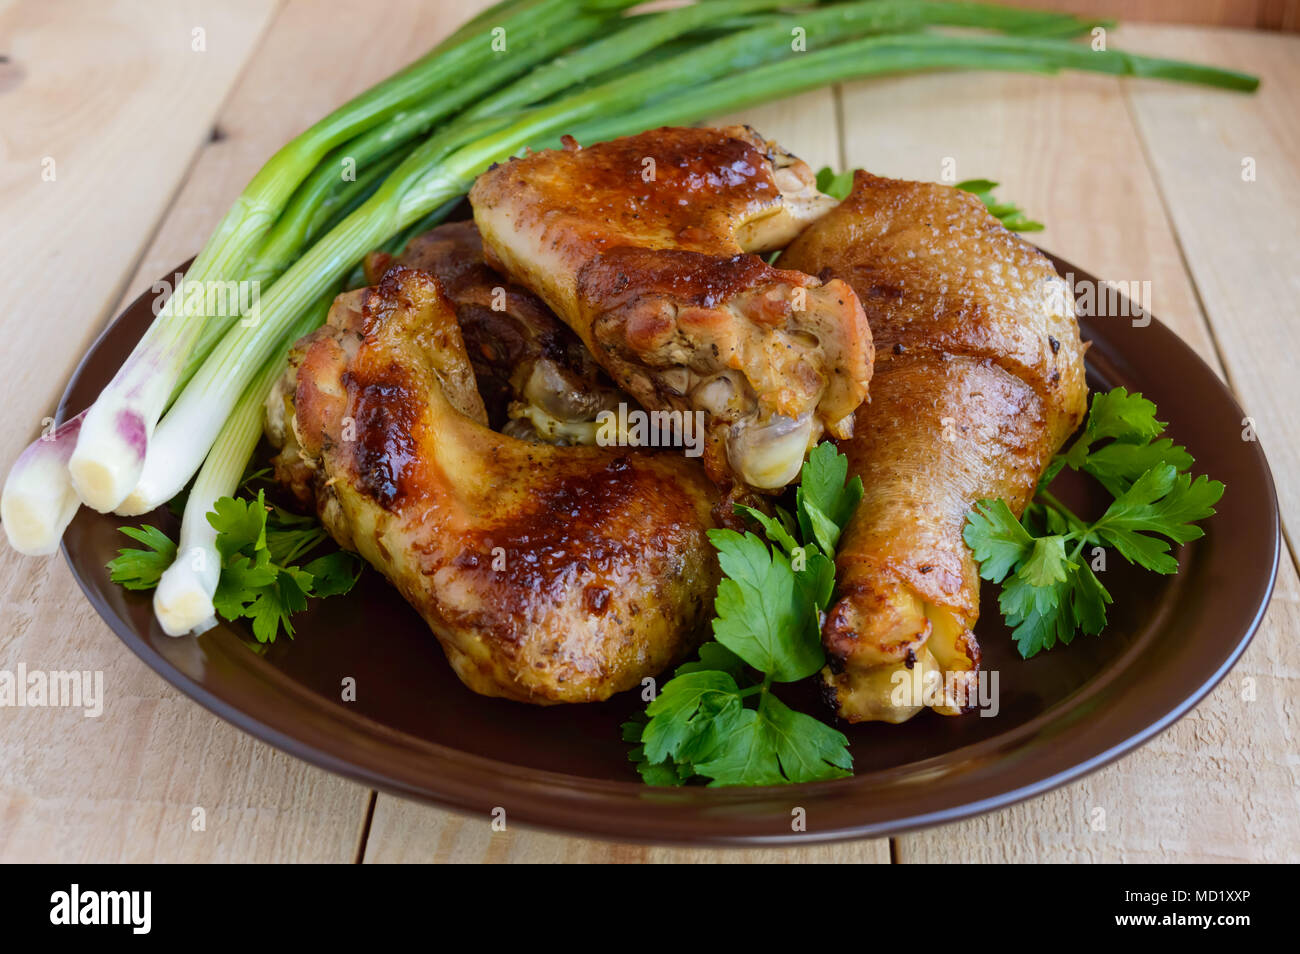 Roasted juicy chicken (legs, winglets) on a clay plate on a light wooden background - Stock Image